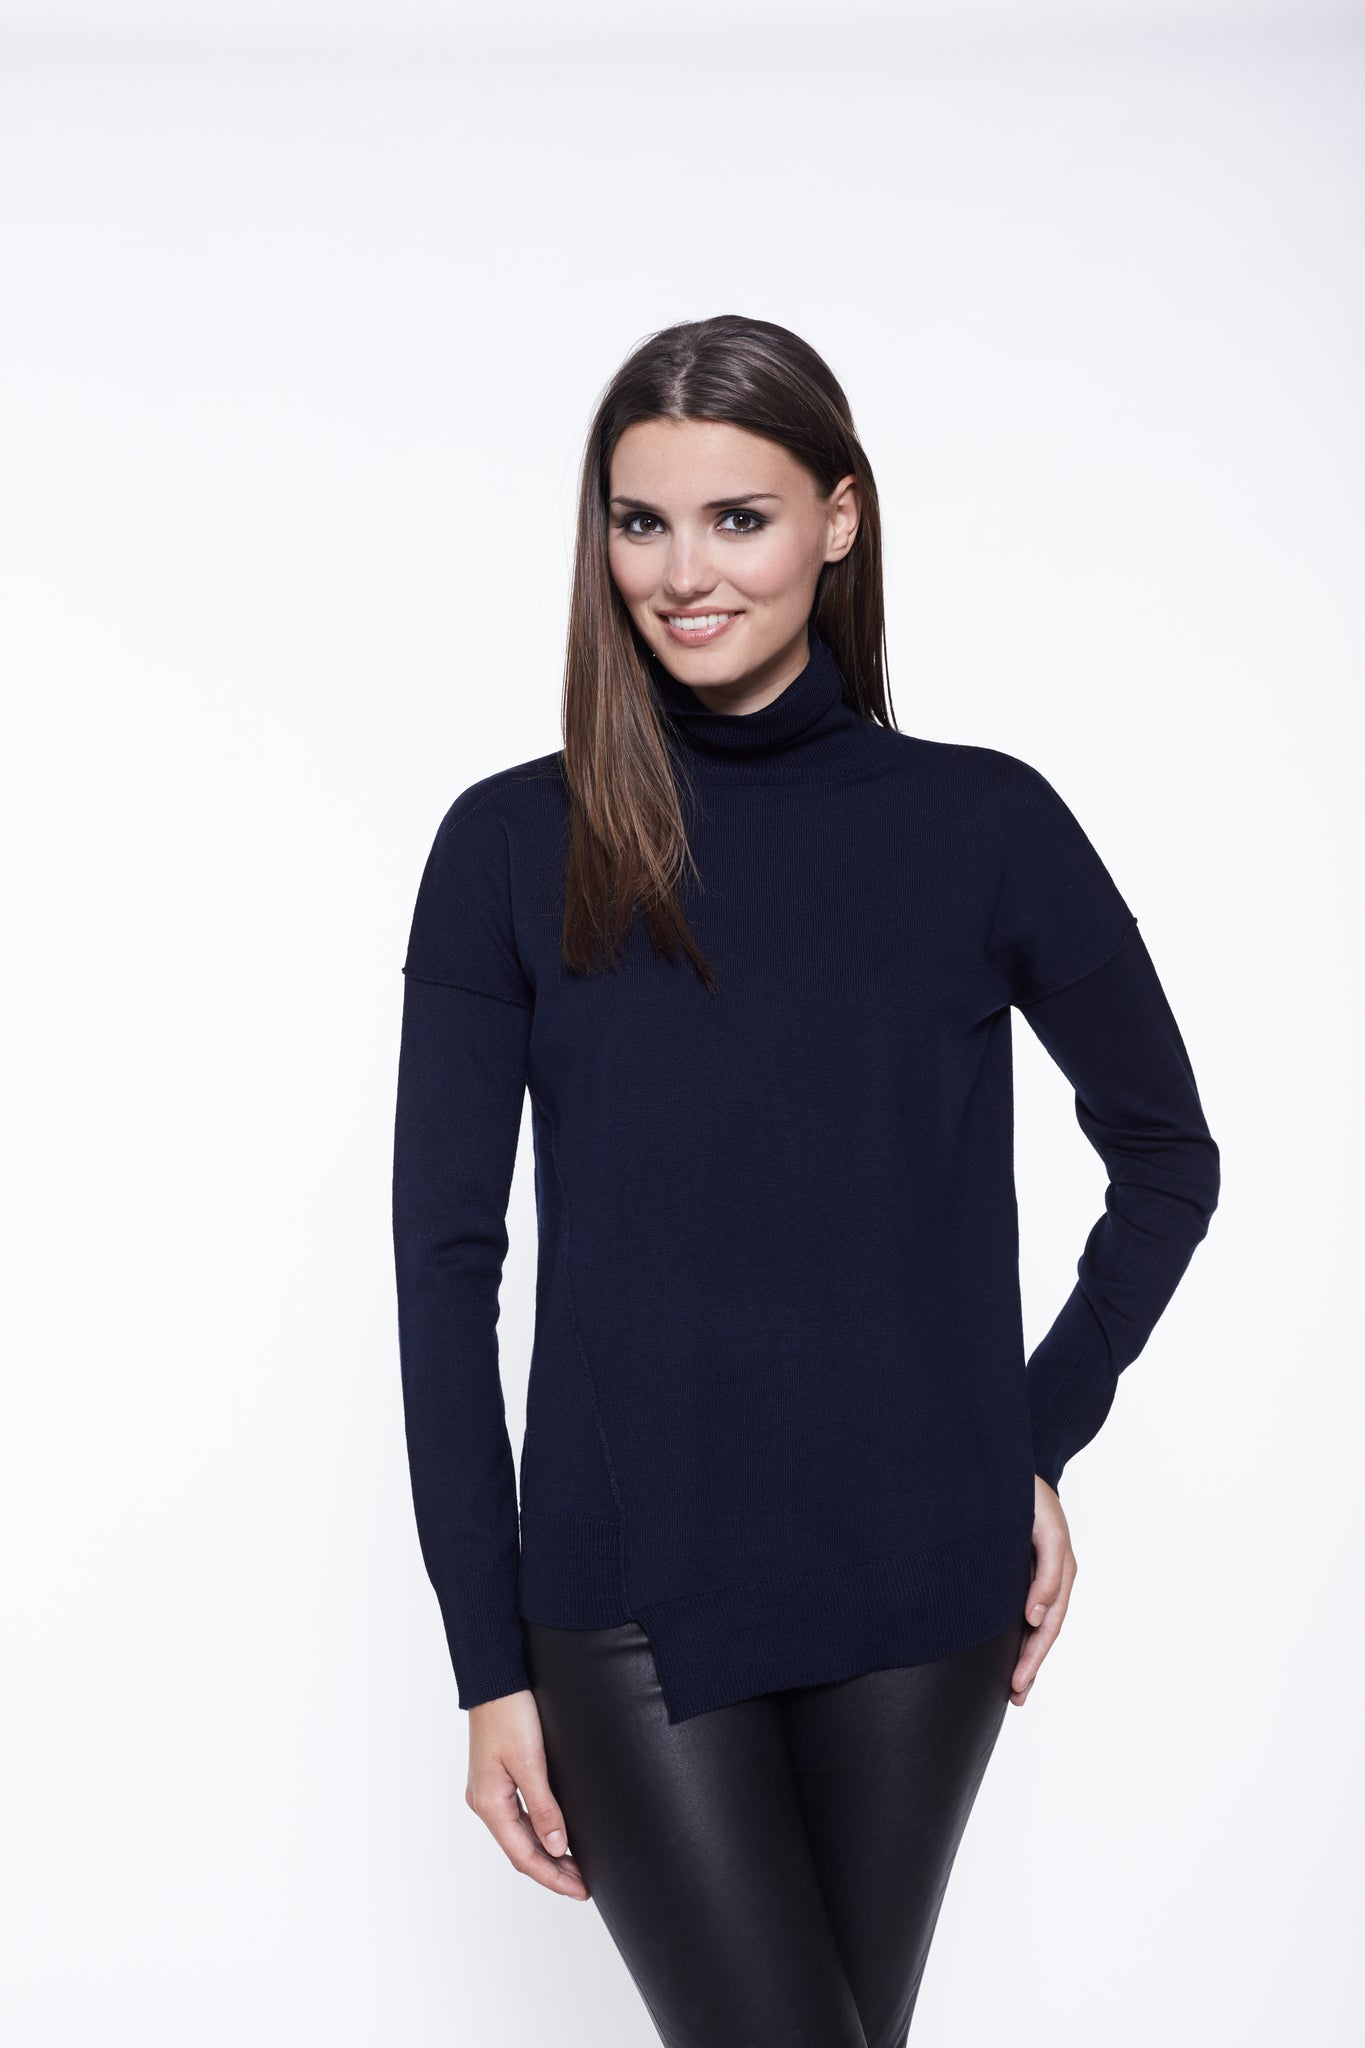 The Asymmetrical Turtleneck